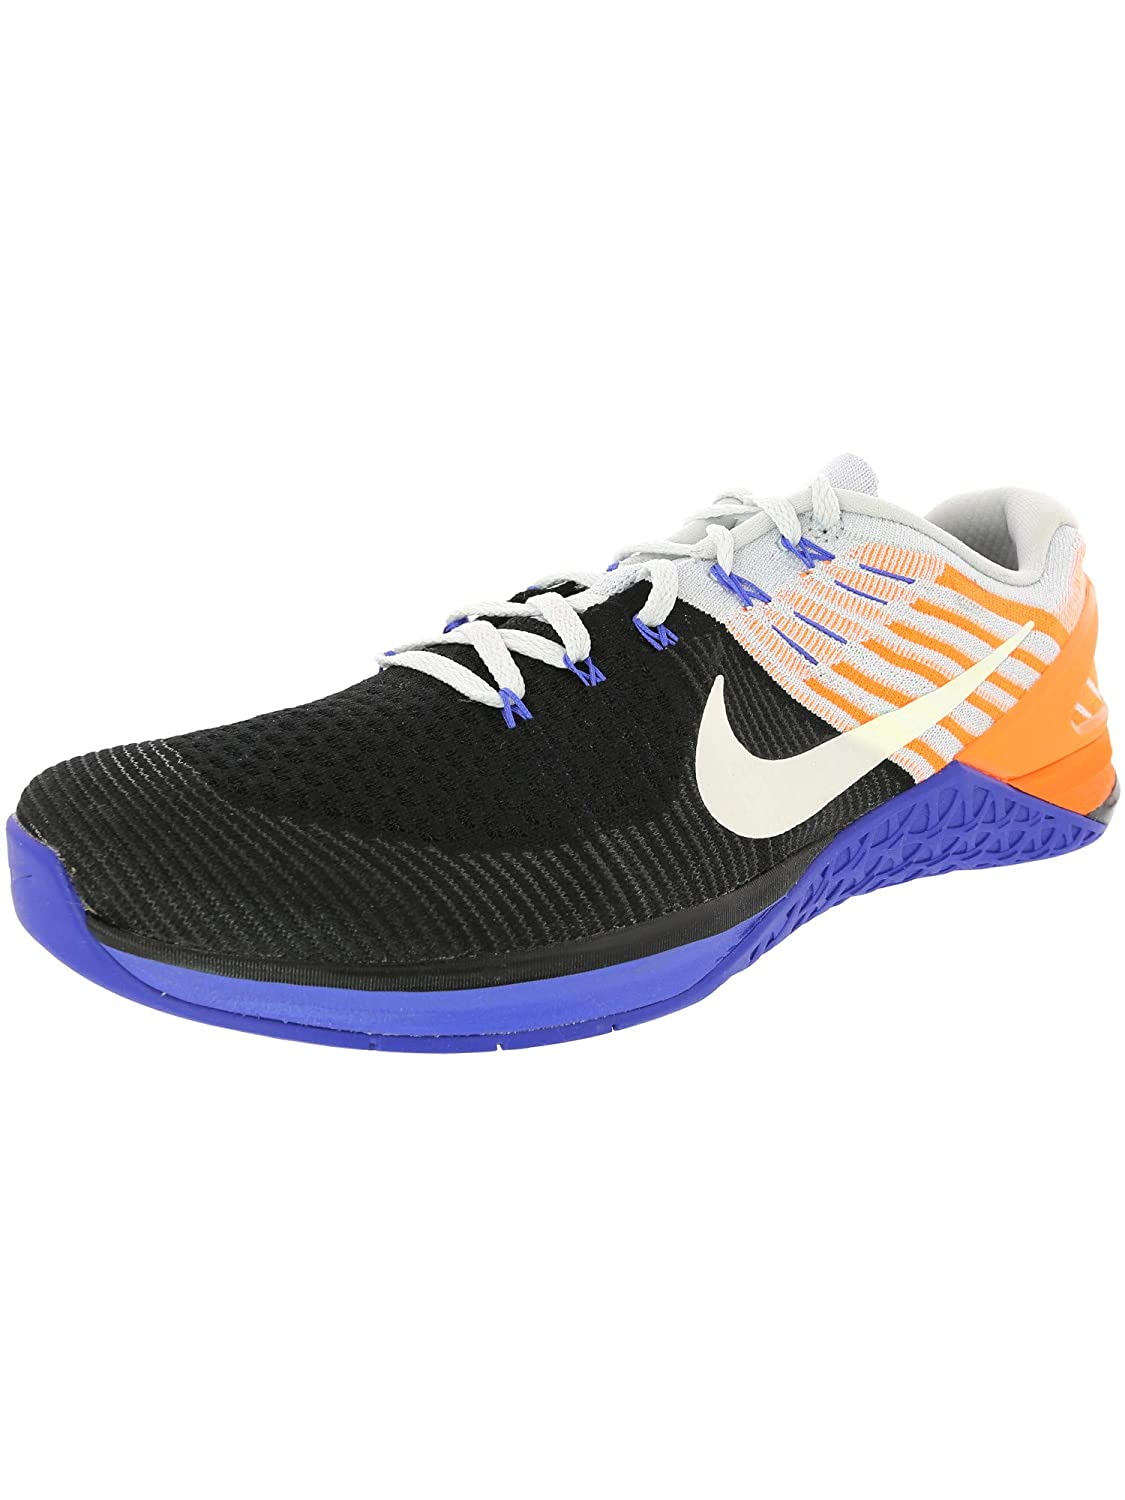 [ナイキ] Men's Metcon Dsx Flyknit Ankle-High Fabric Cross Trainer Shoe 12 M US Platinum/White B073N6RZ5W